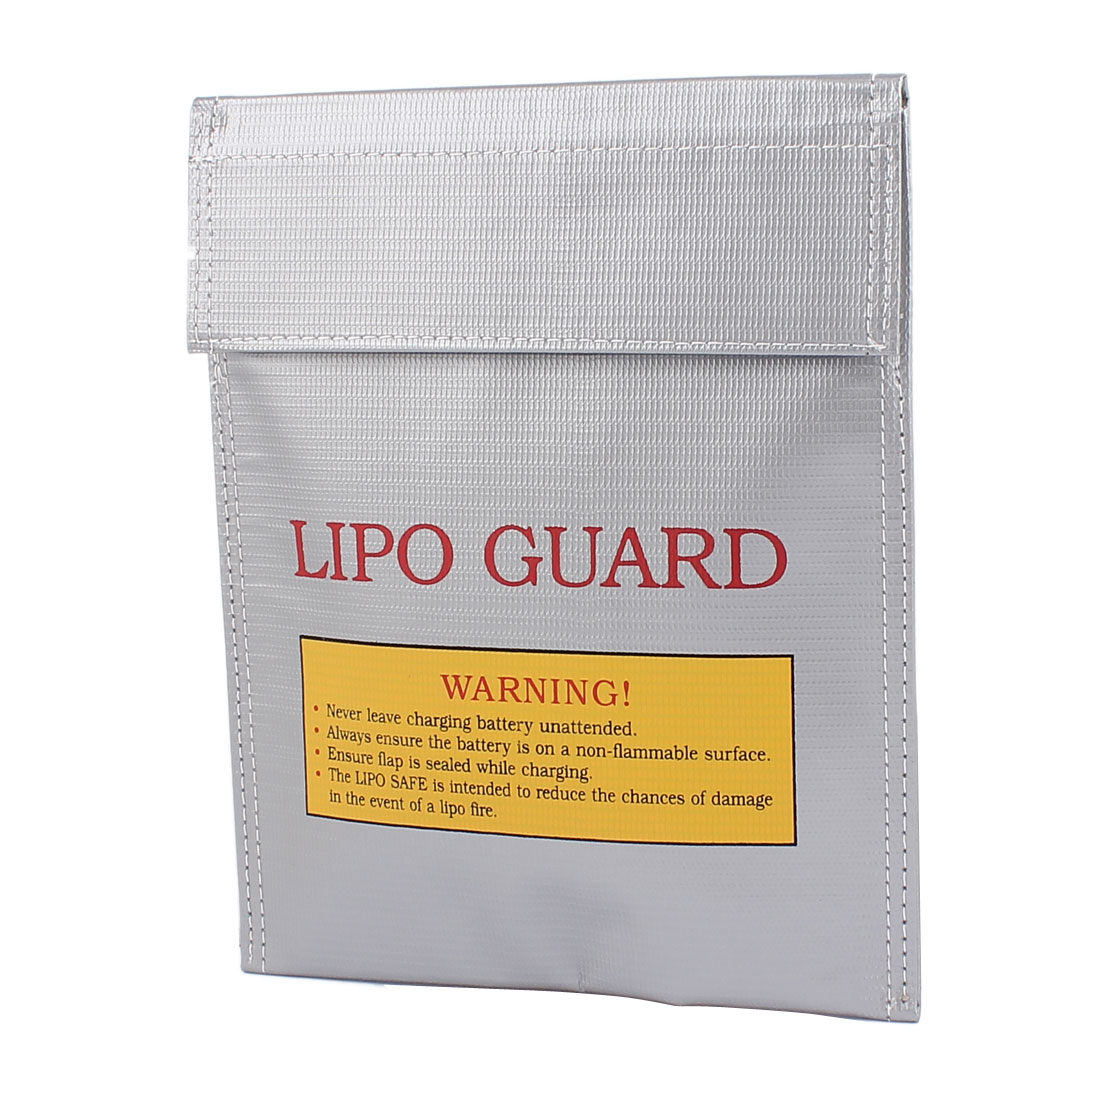 Lipo Battery Fireproof Explosionproof Bag Storage Guard Safe Charging Holder 18cm x 23cm Silver Tone